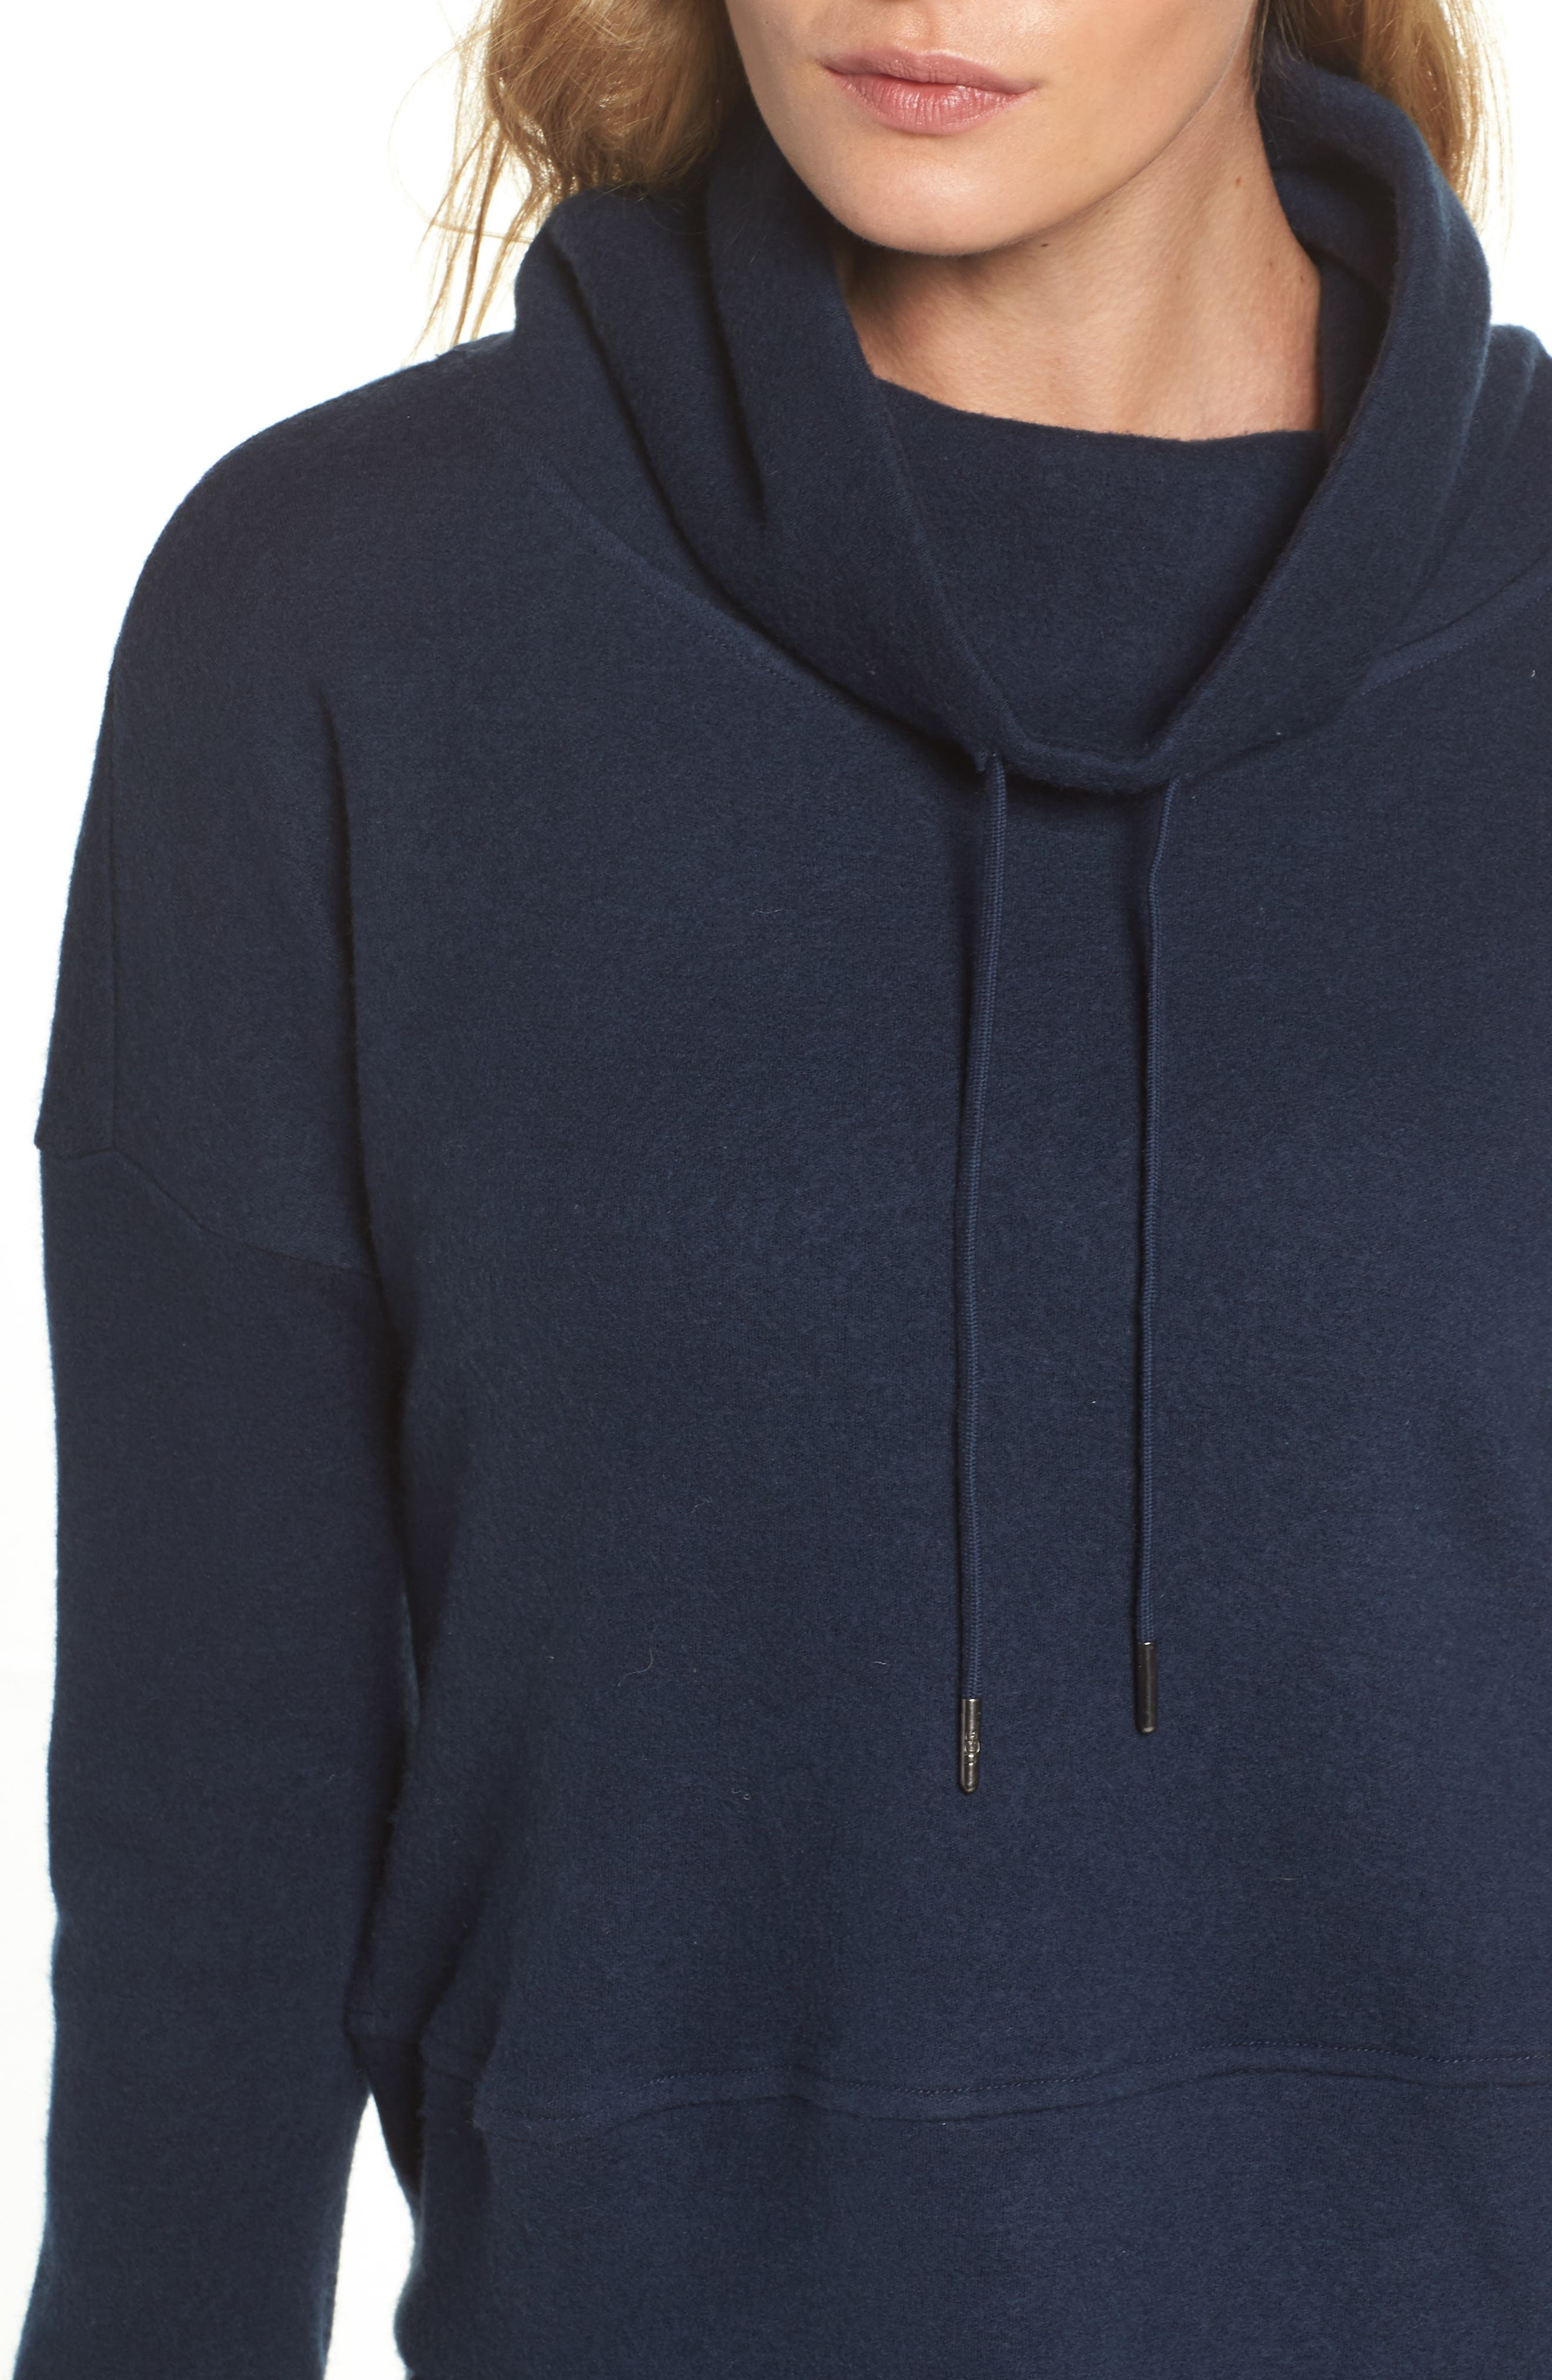 Funnel Neck Crop Merino Wool Sweatshirt,                             Alternate thumbnail 6, color,                             Navy Heather